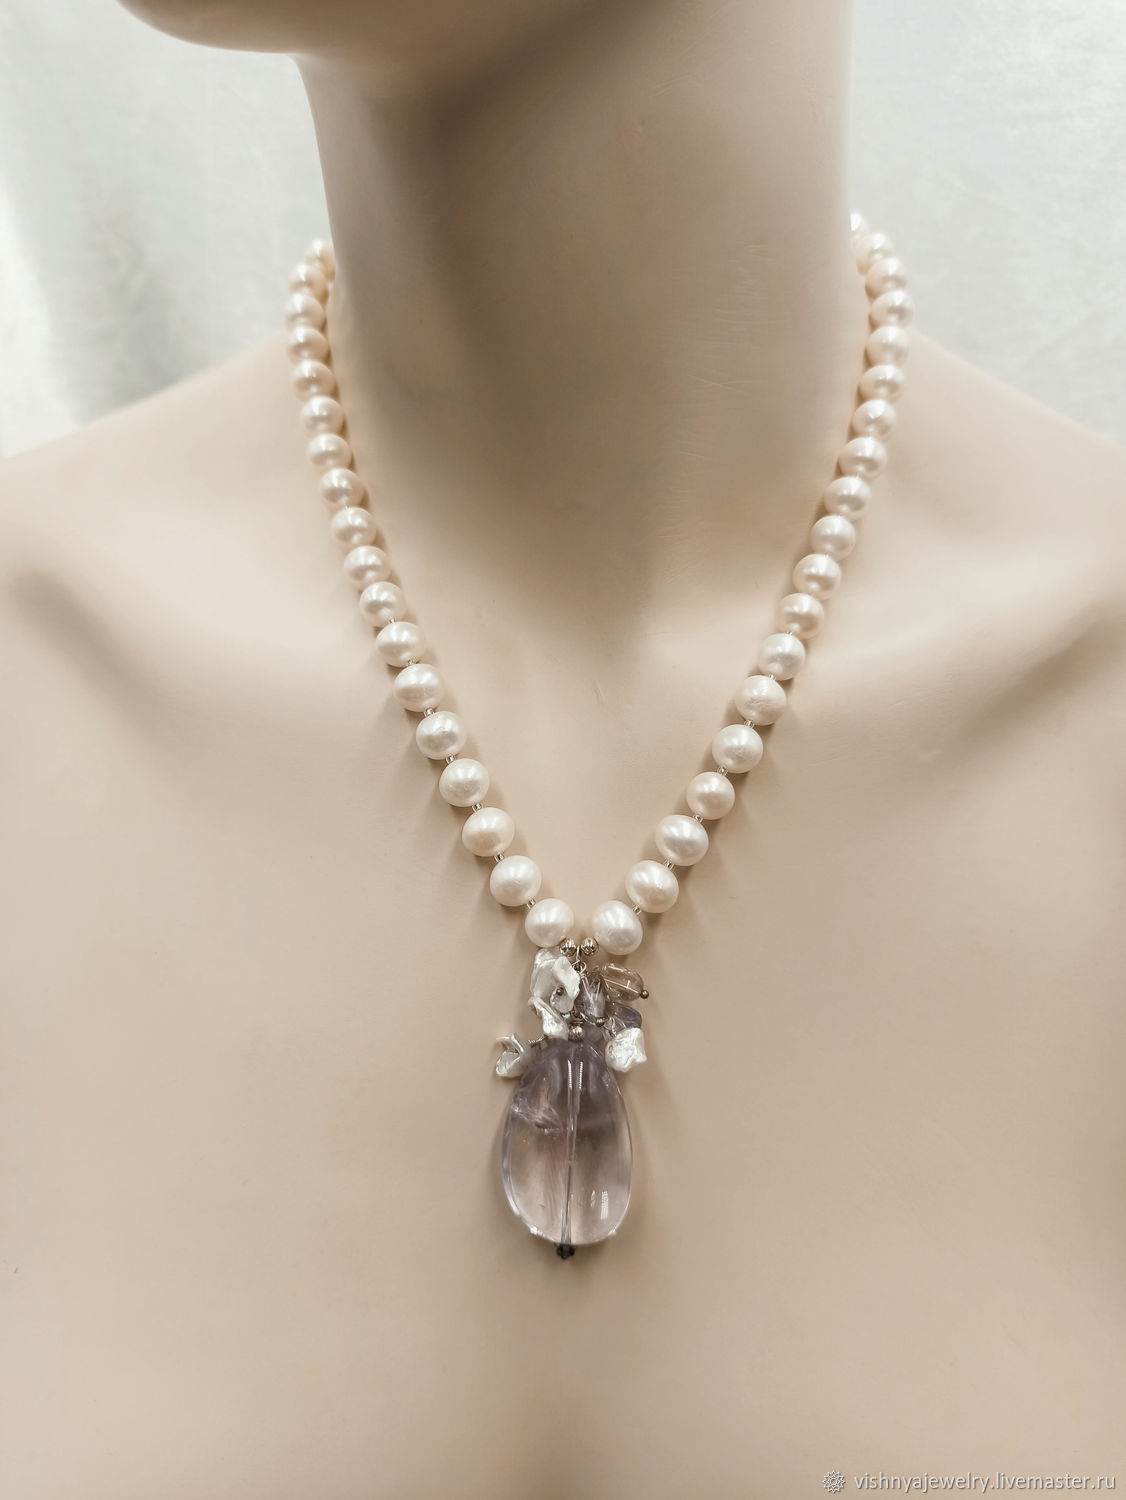 Necklace Pearl Silver 925 Amethyst Recognition, Necklace, Moscow,  Фото №1